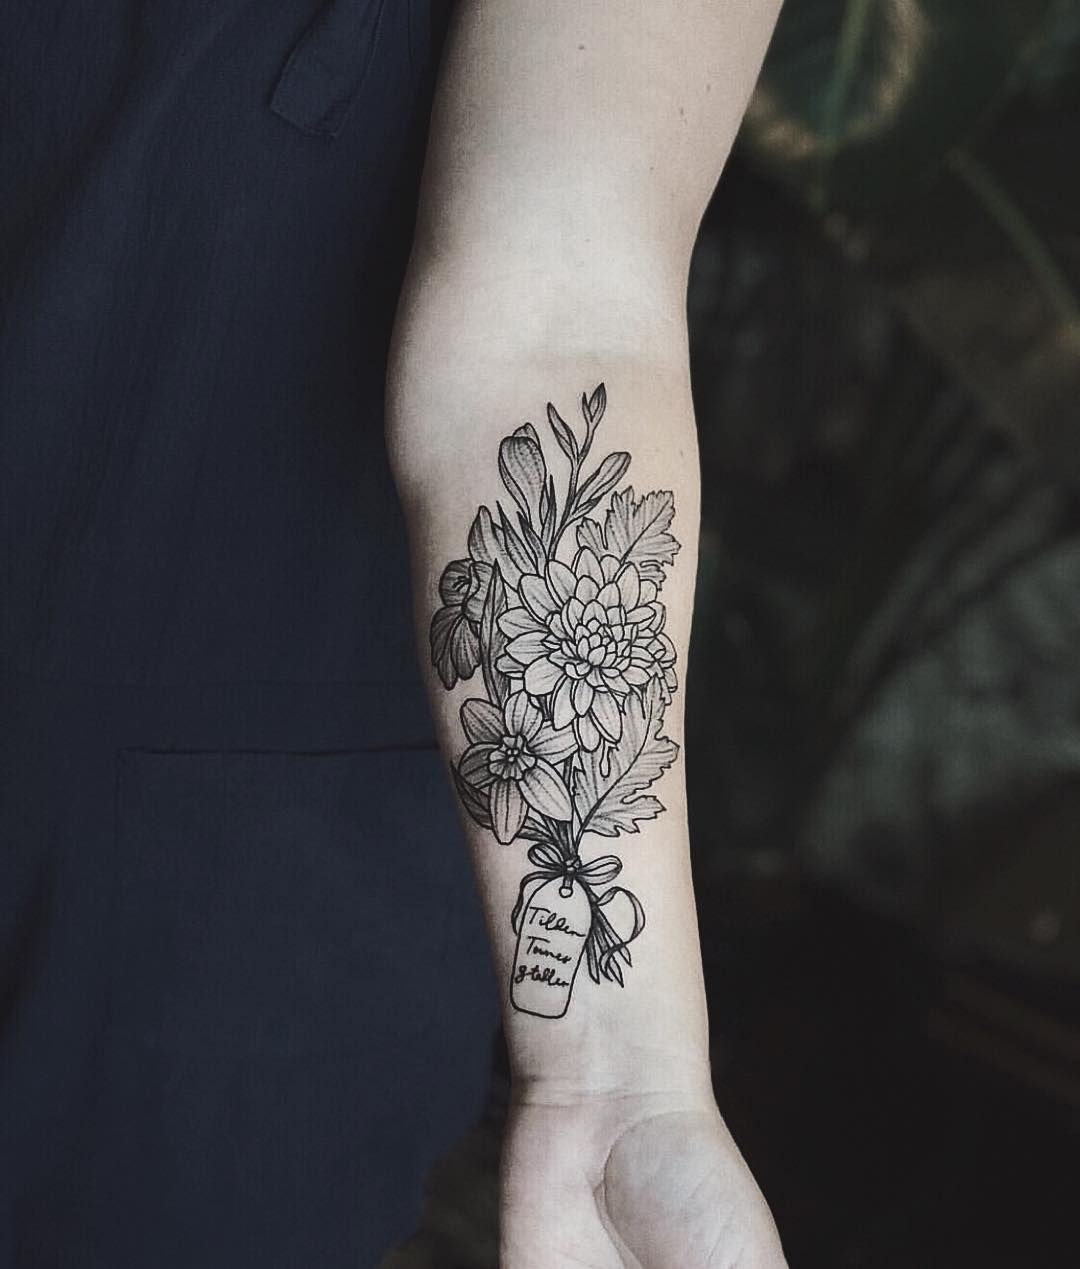 46 Best Gorgeous Forearm Tattoos For Men And Women Page 44 Of 48 Tattofit Com Best Tattoo Blog Tattoos For Guys Forearm Tattoos Tattoos For Women